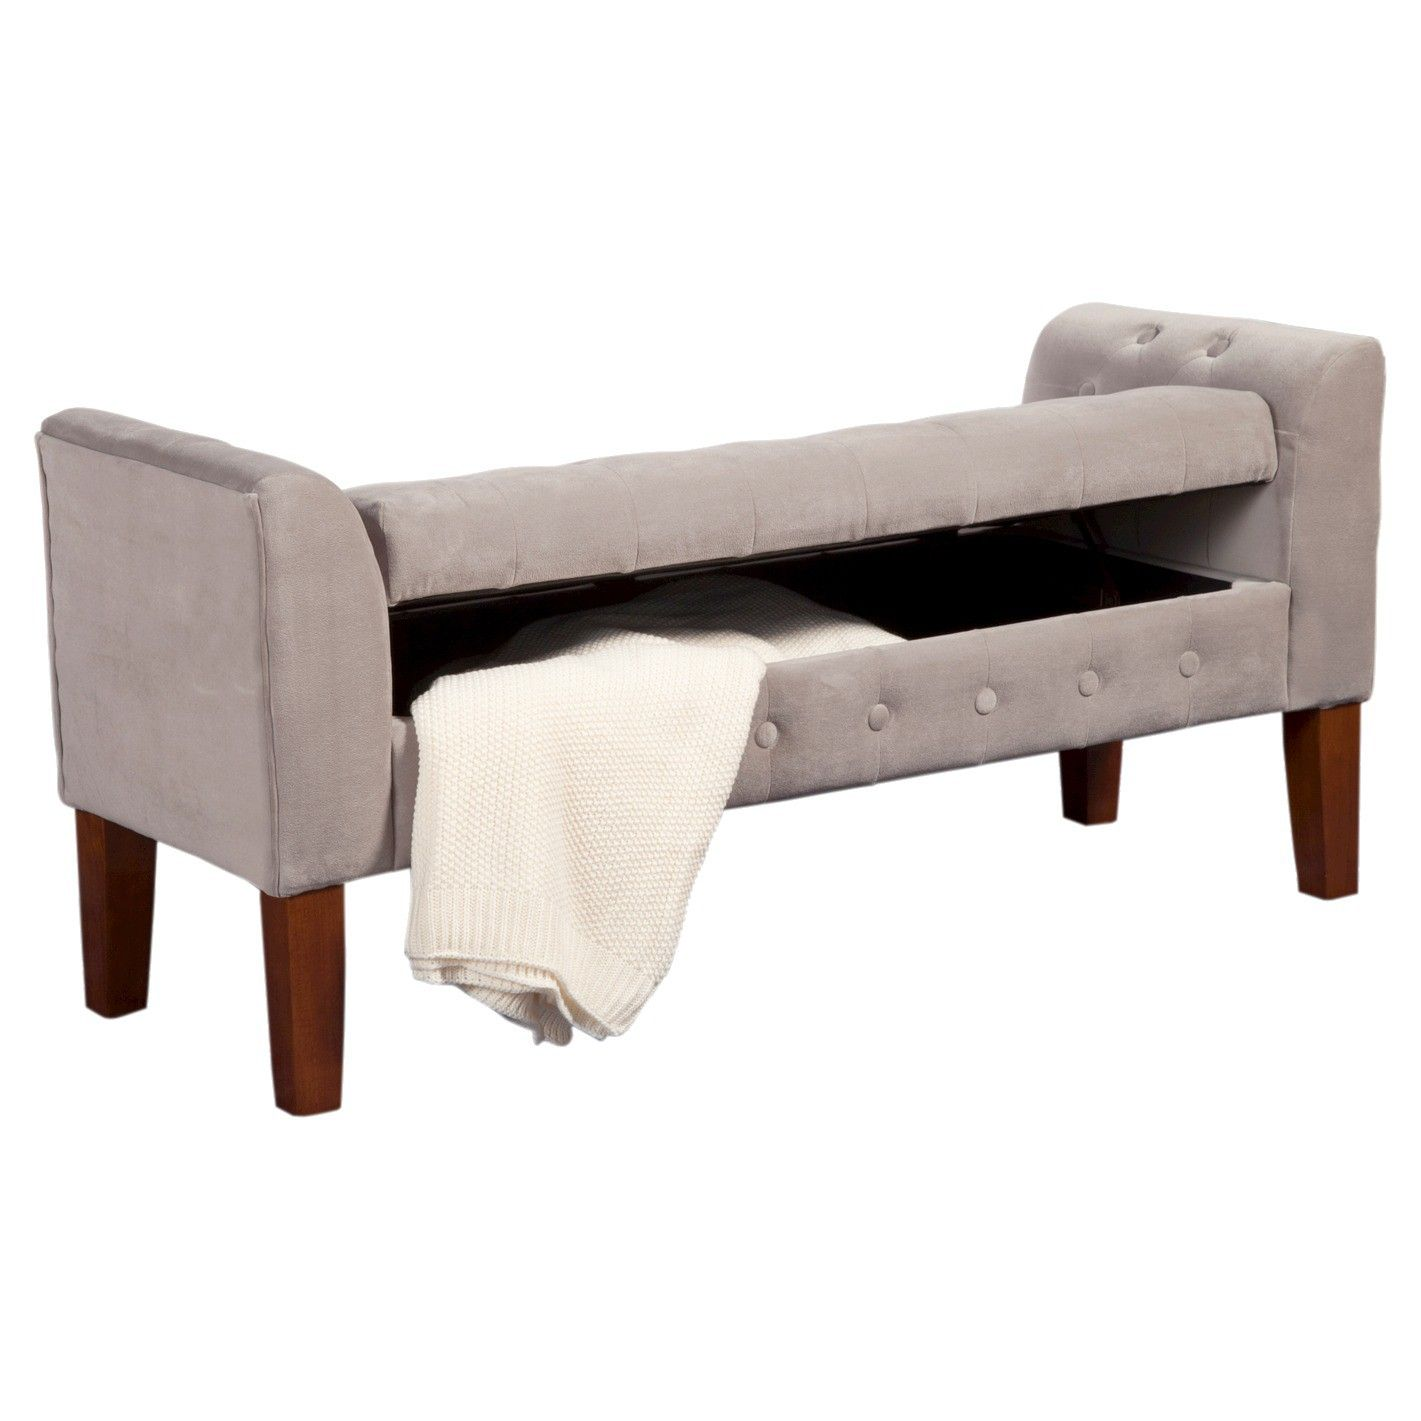 Velvet tufted storage settee bench bed storage storage benches and target Bed bench storage